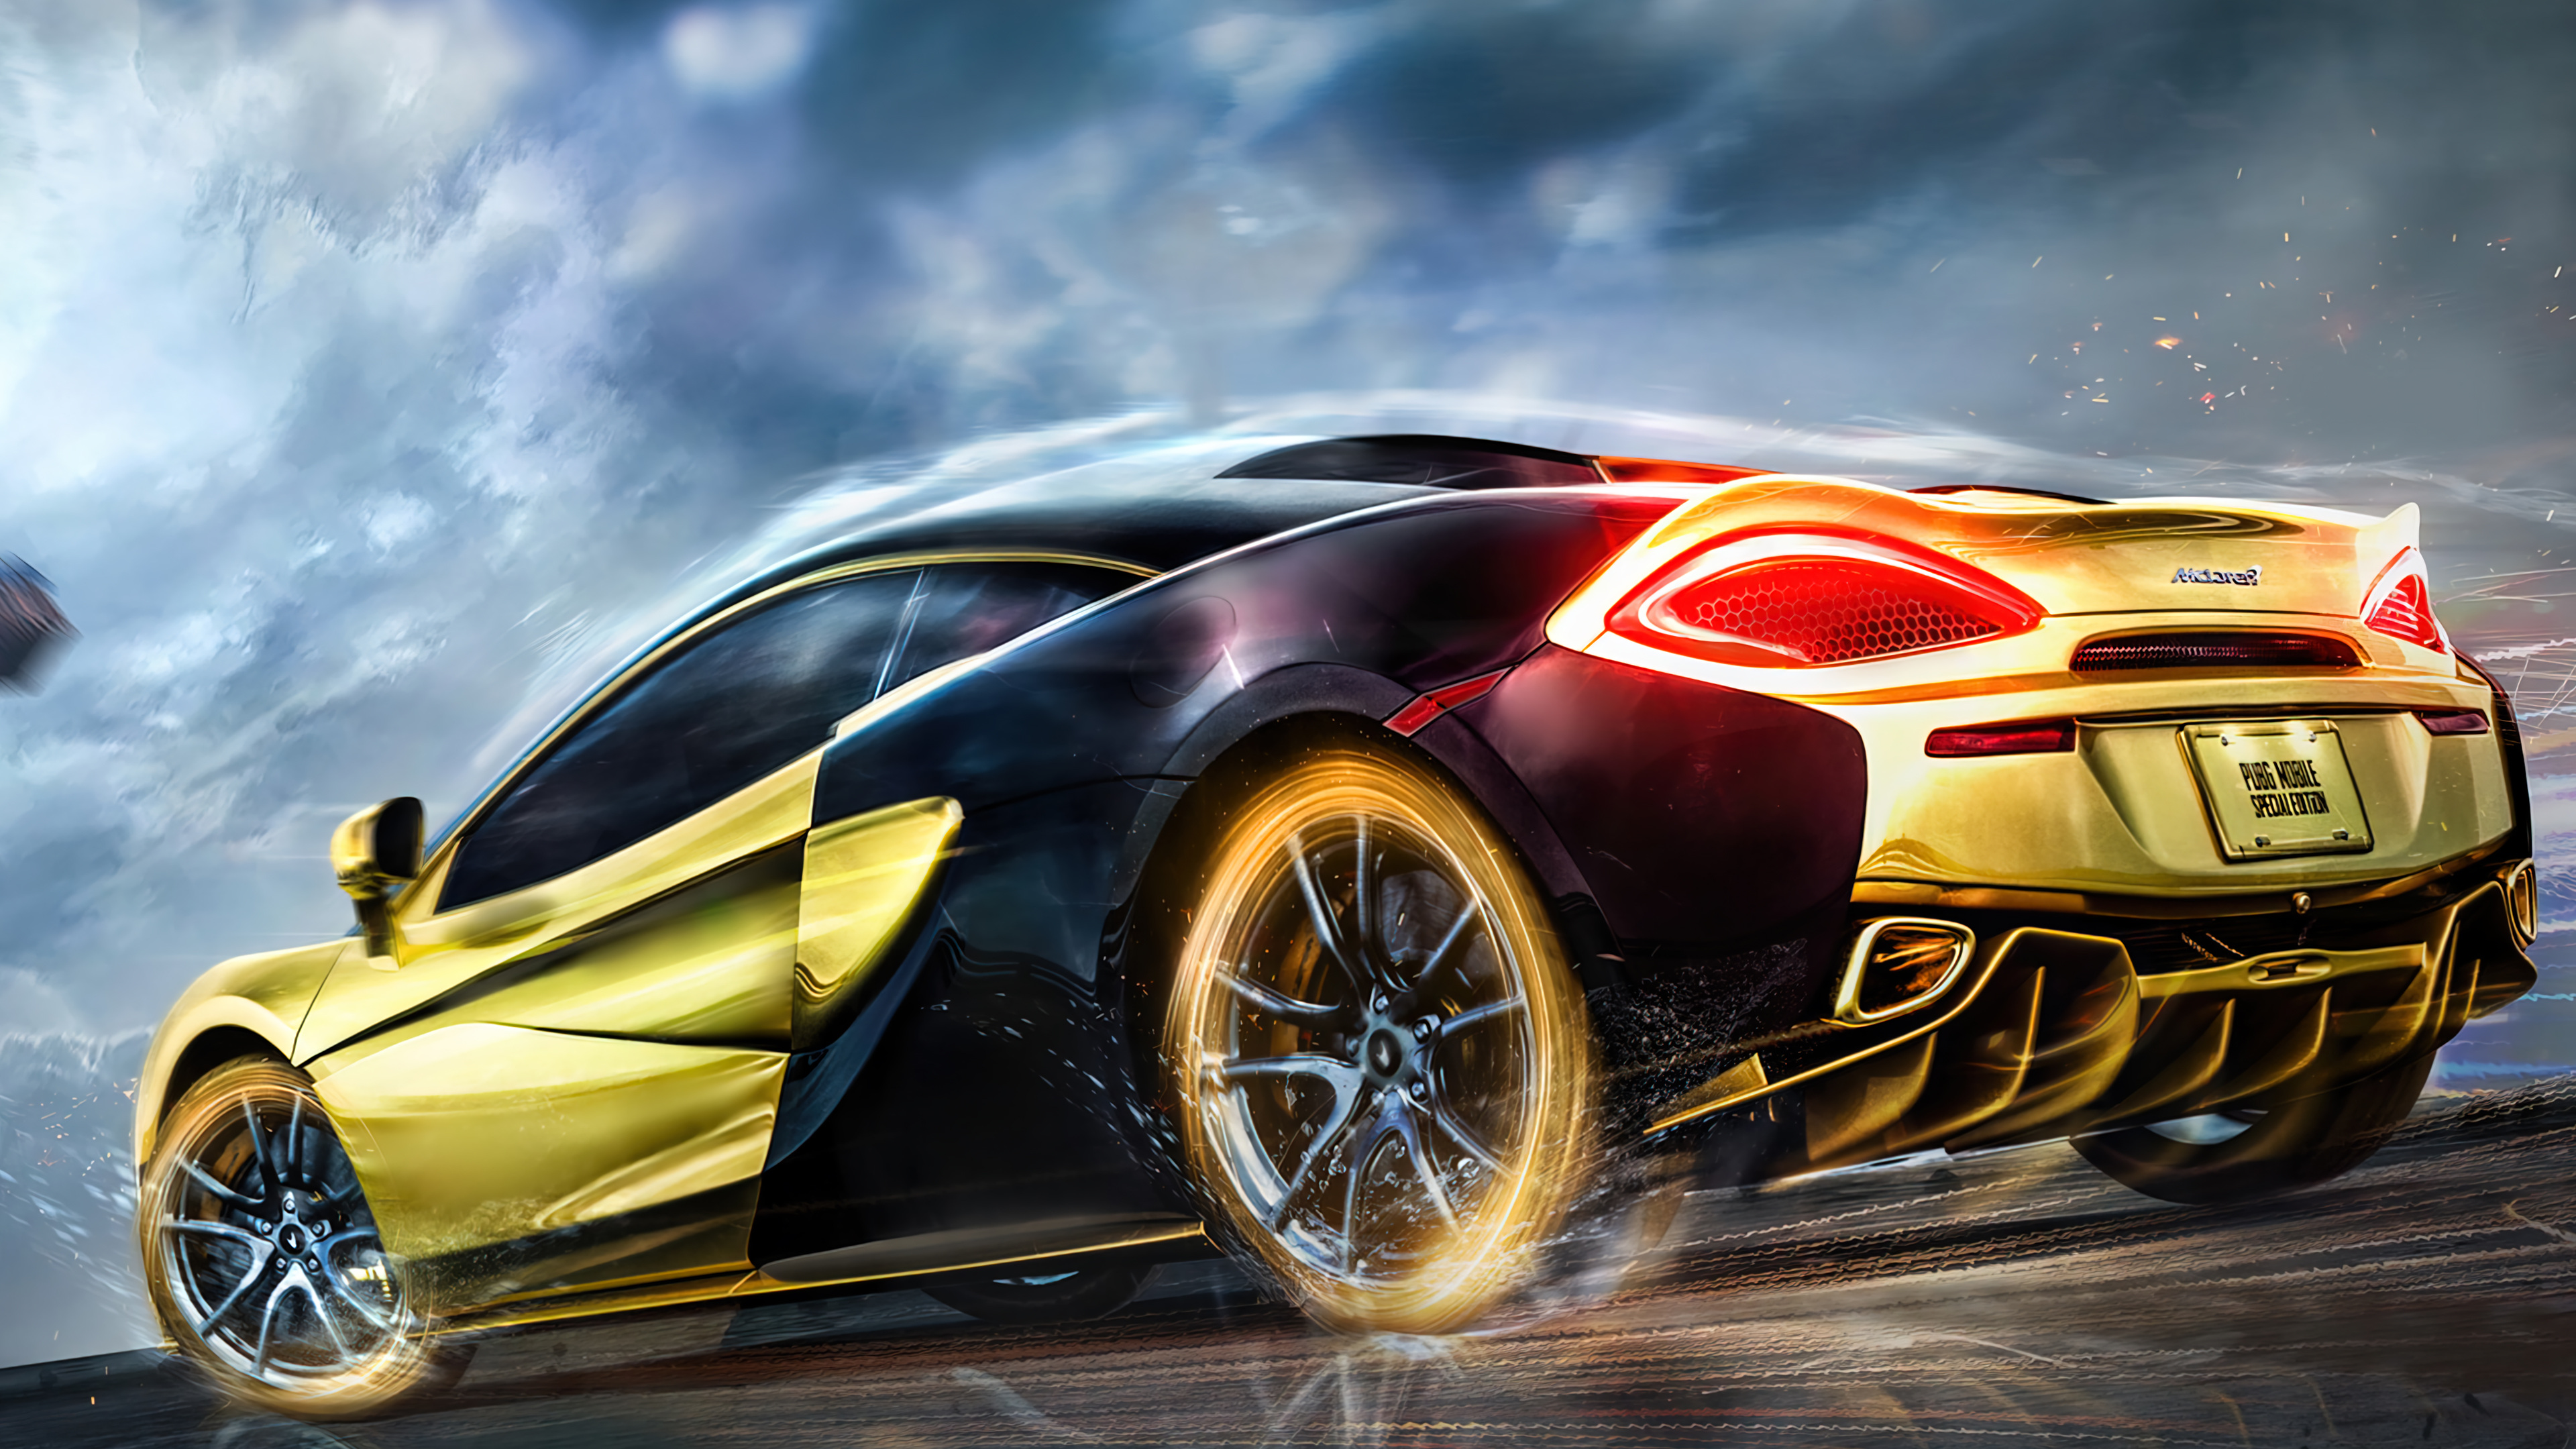 Download the image in uhd 4k 3840x2160, full hd 1920x1080 sizes for macbook and desktop backgrounds or in vertical hd sizes for android phones and iphone 6, 7, 8, x. Pubg Mobile Gold Mclaren Sports Car Wallpaper 4k Pc Desktop 7670a